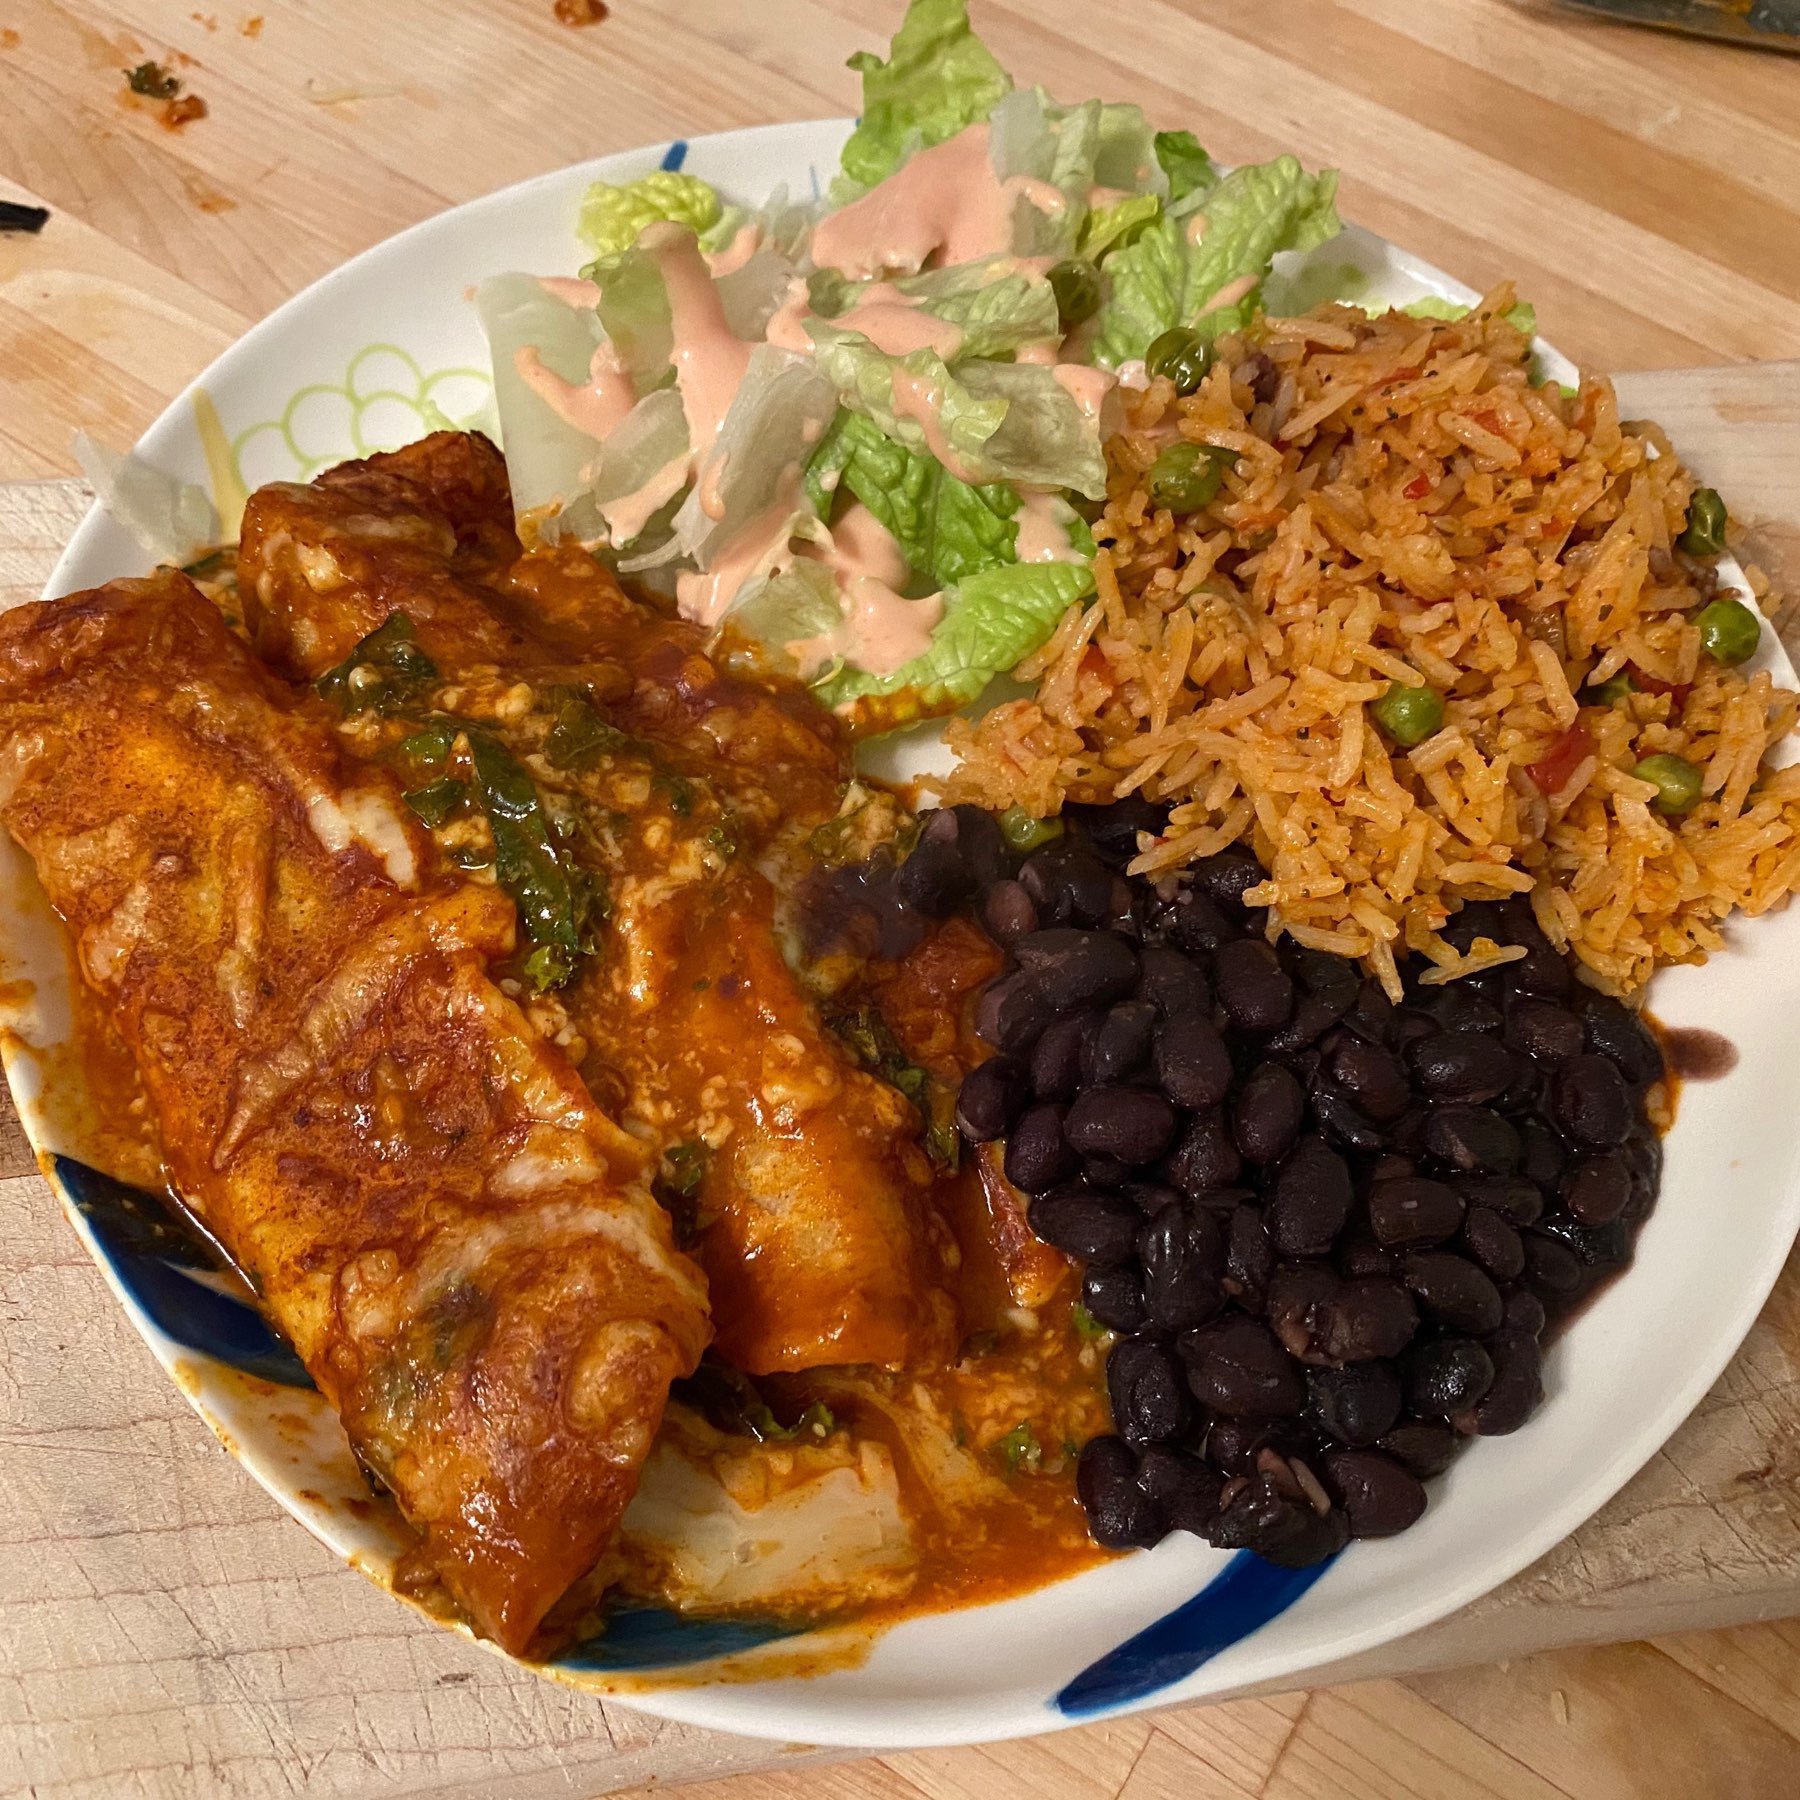 plate with kale enchiladas, beans and rice